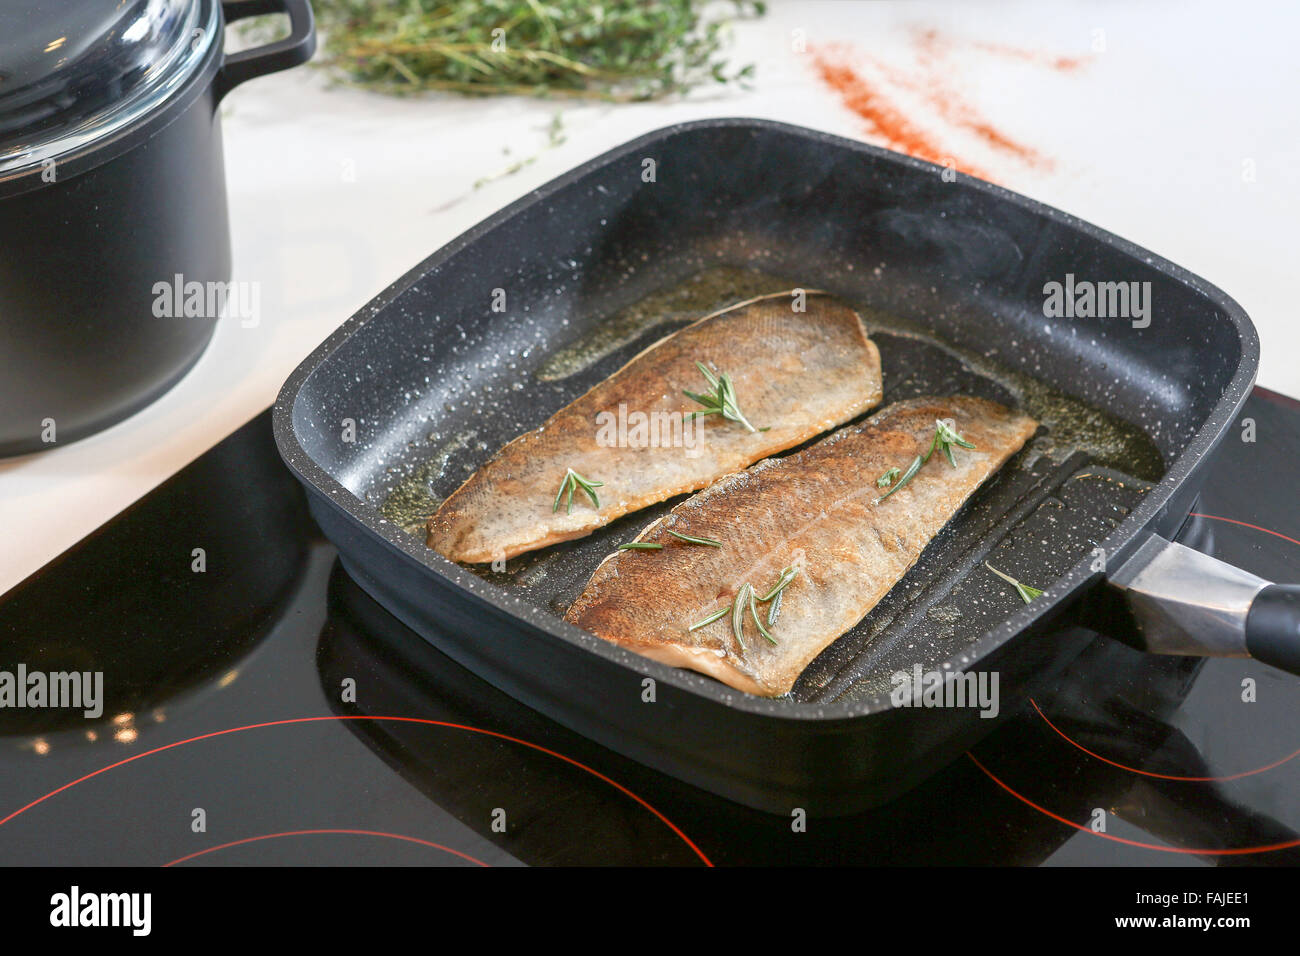 Frying fish on an electric stove - Stock Image